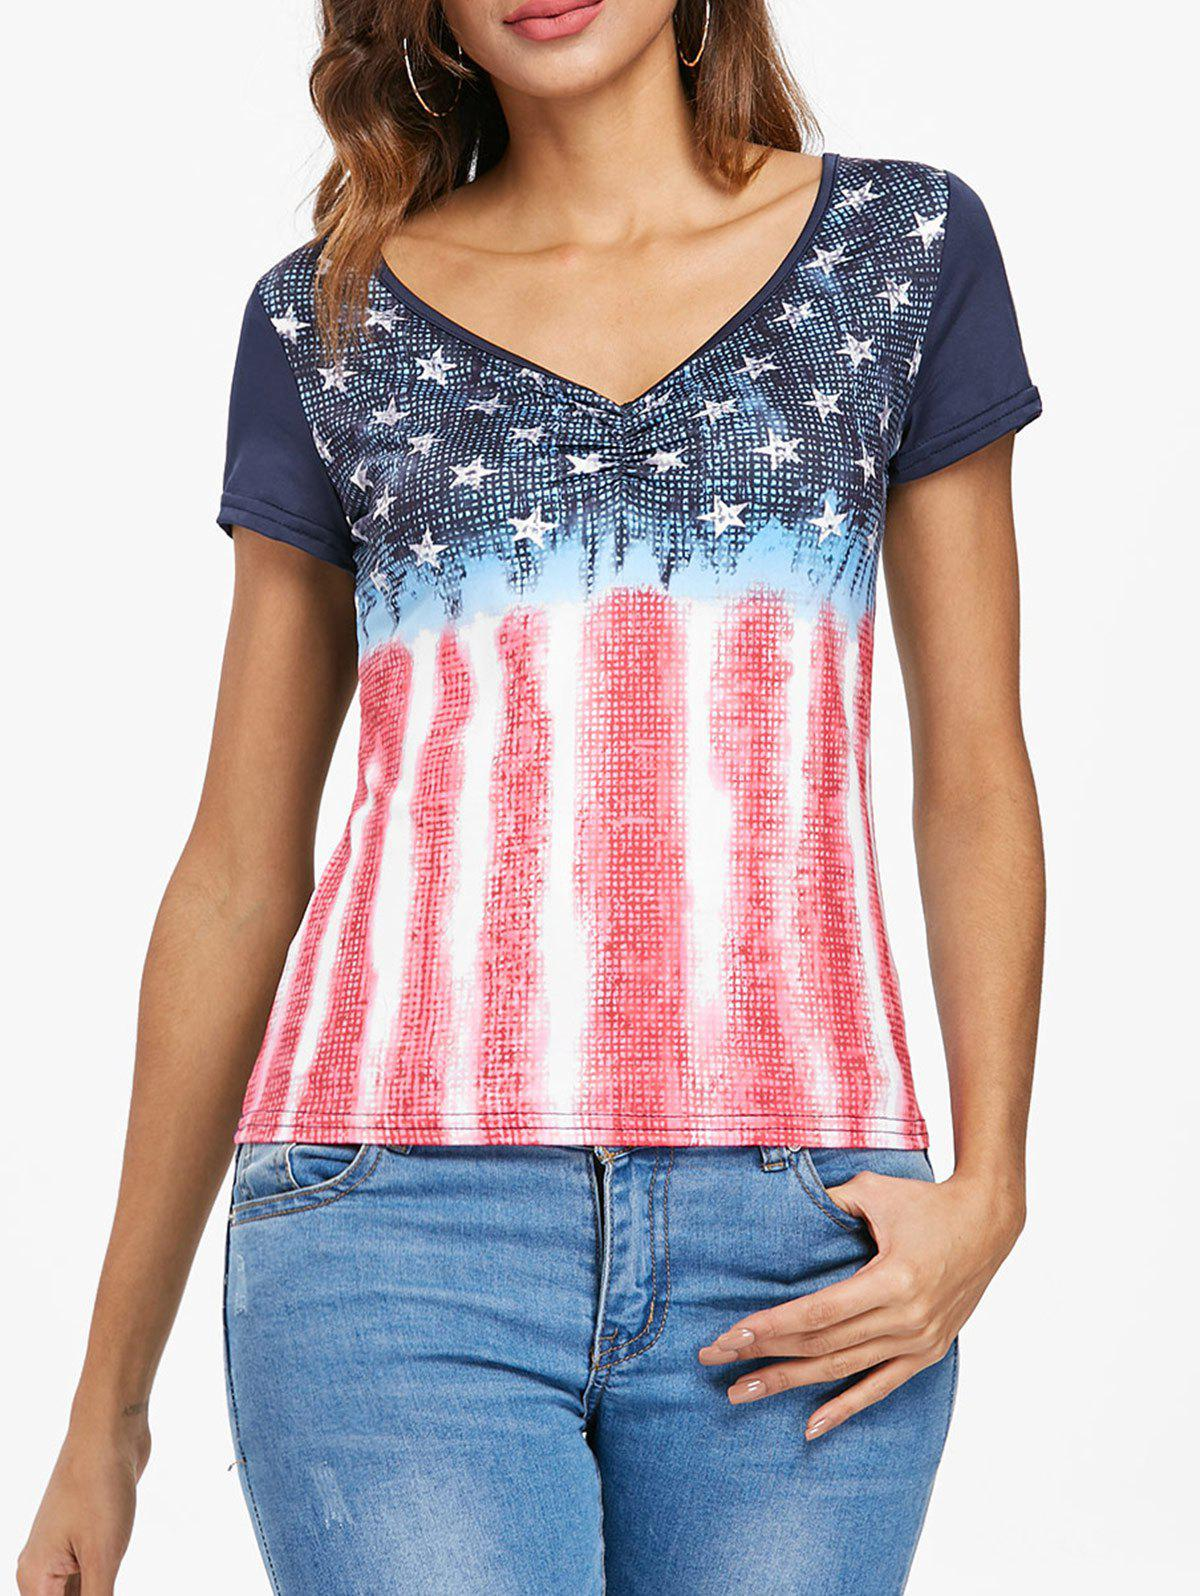 Affordable Patriotic American Flag Short Sleeve T-shirt